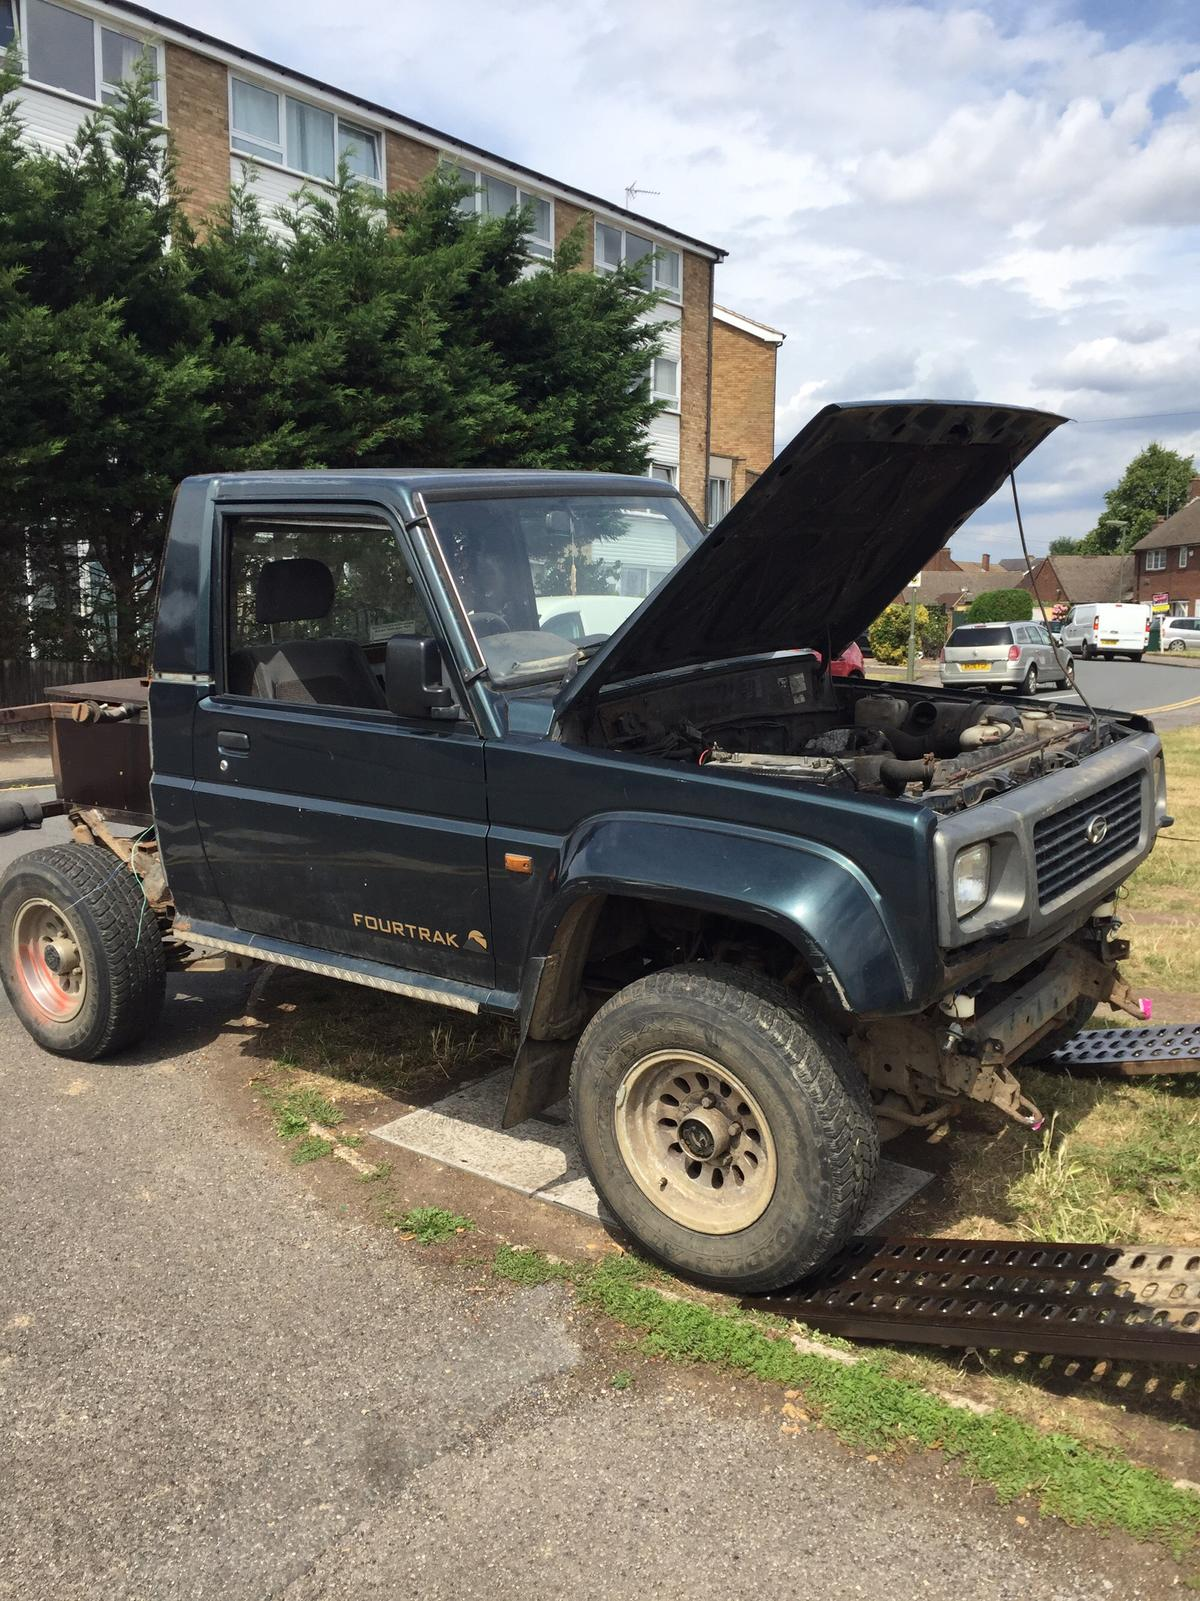 daihatsu fourtrack off roader in TW19 Stanwell for £500 00 for sale